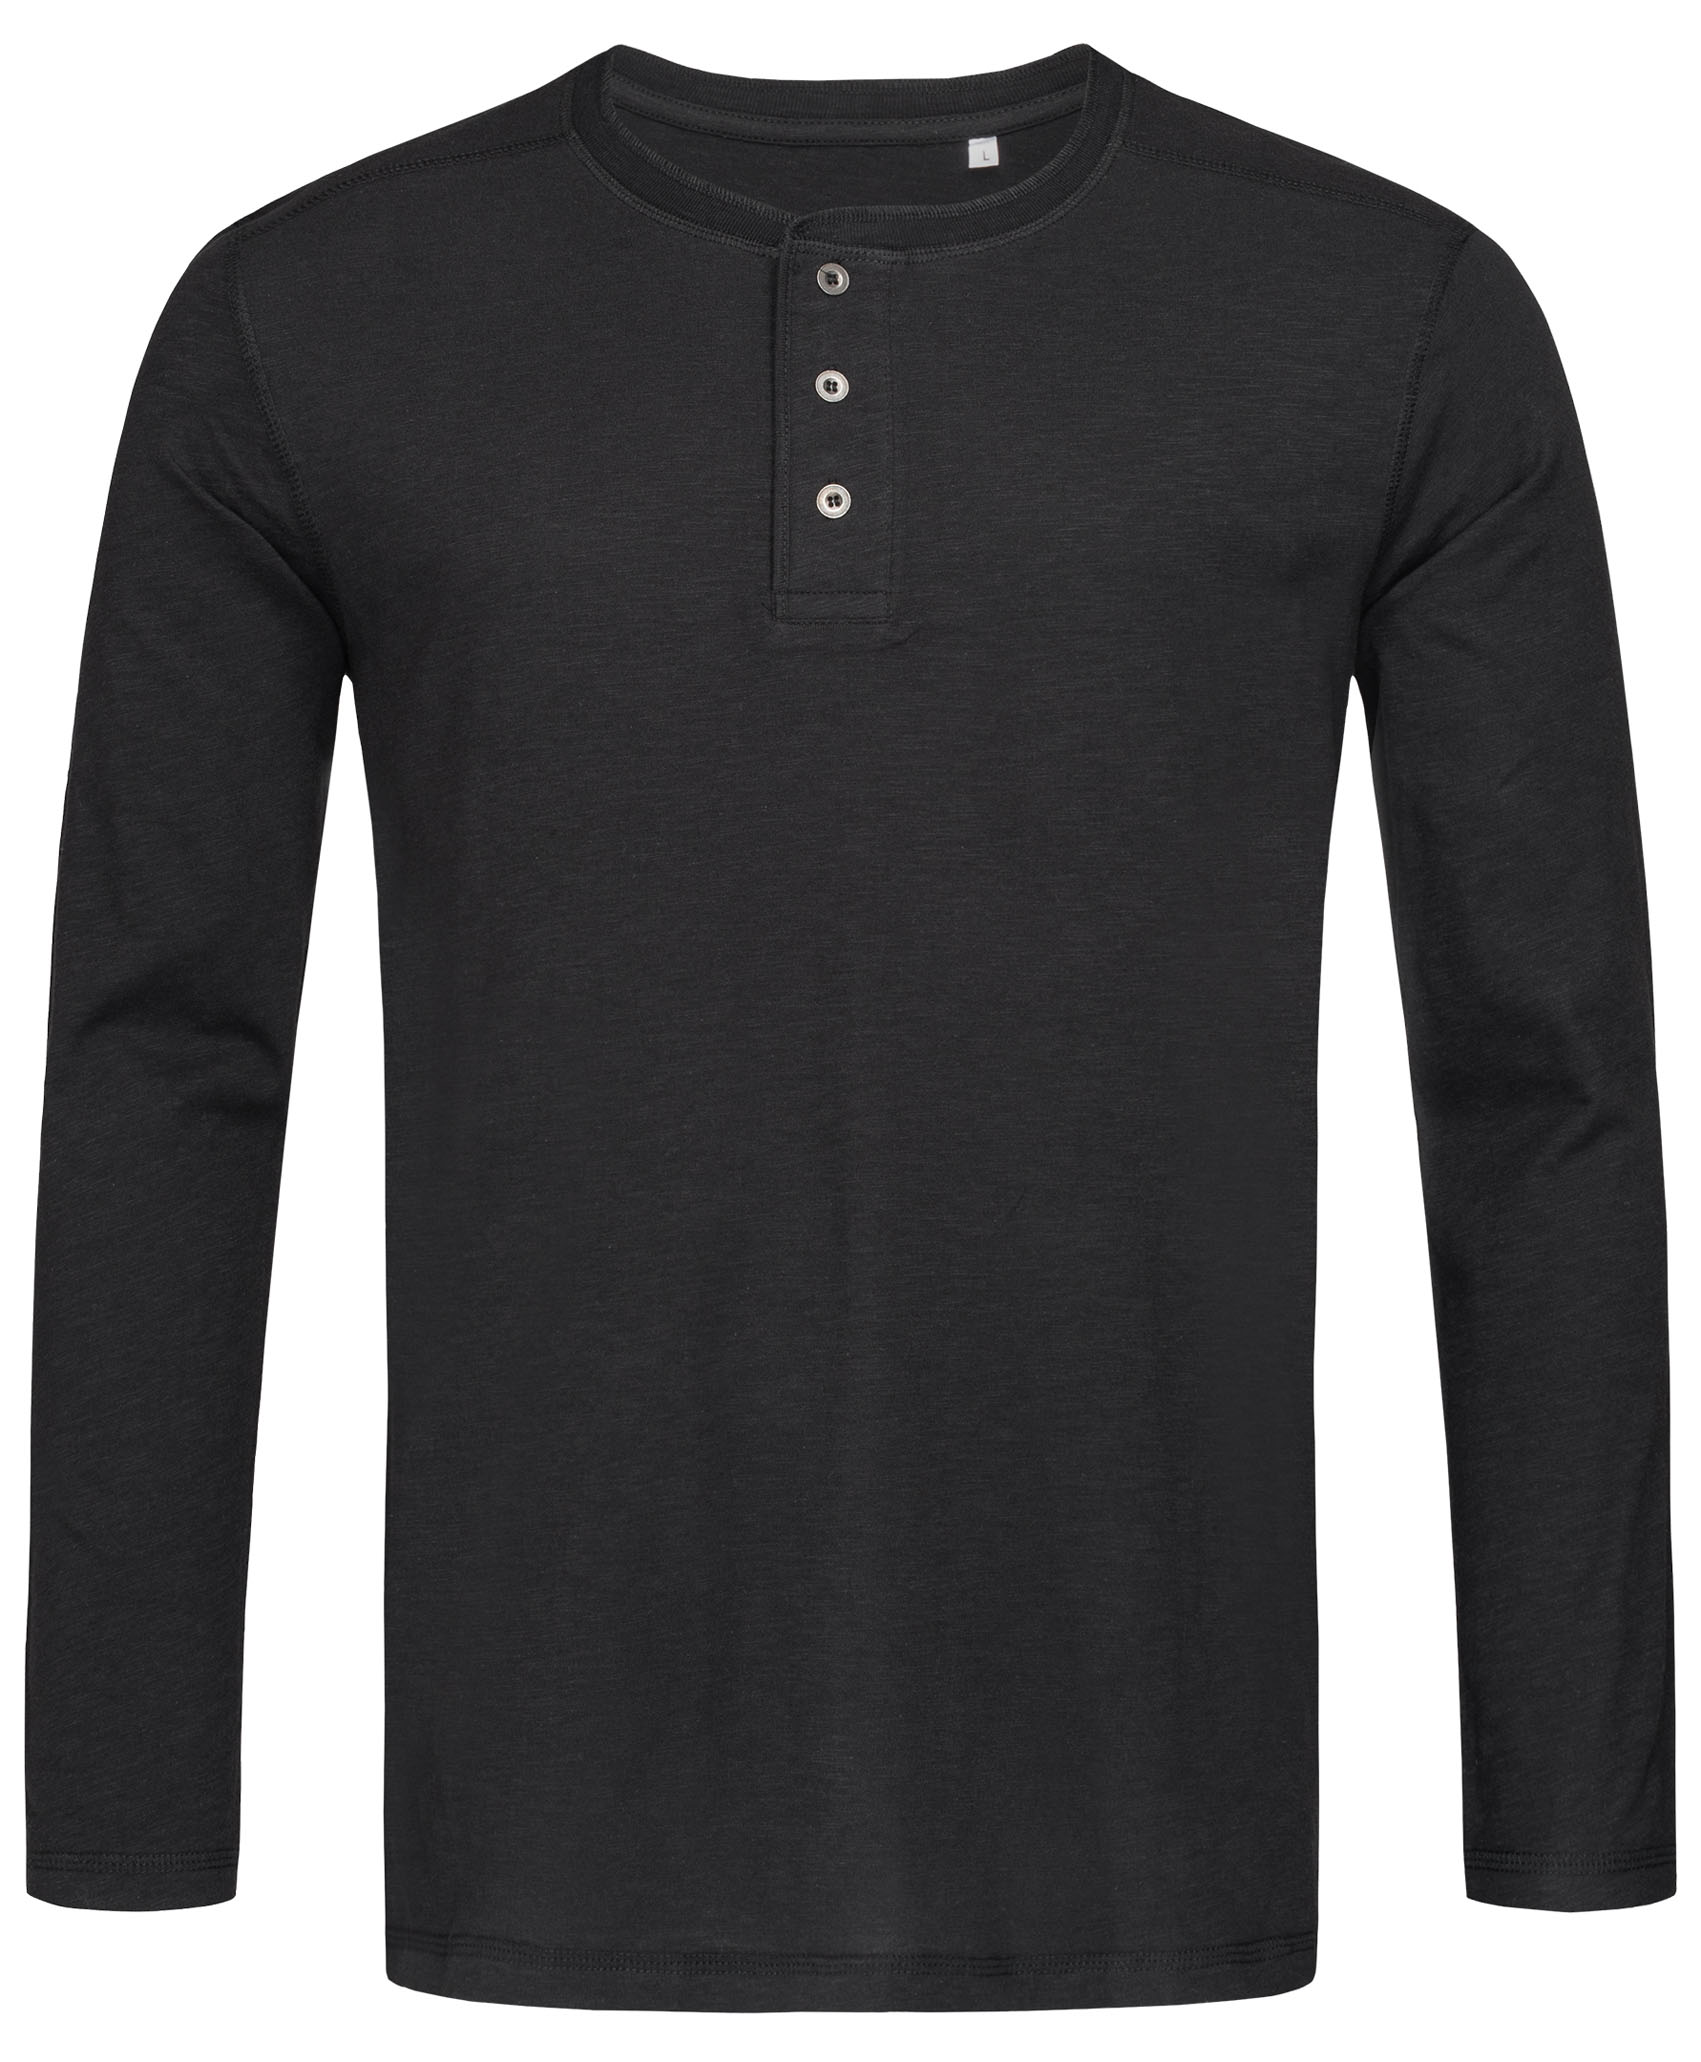 Stedman T-shirt Henley Shawn LS for him